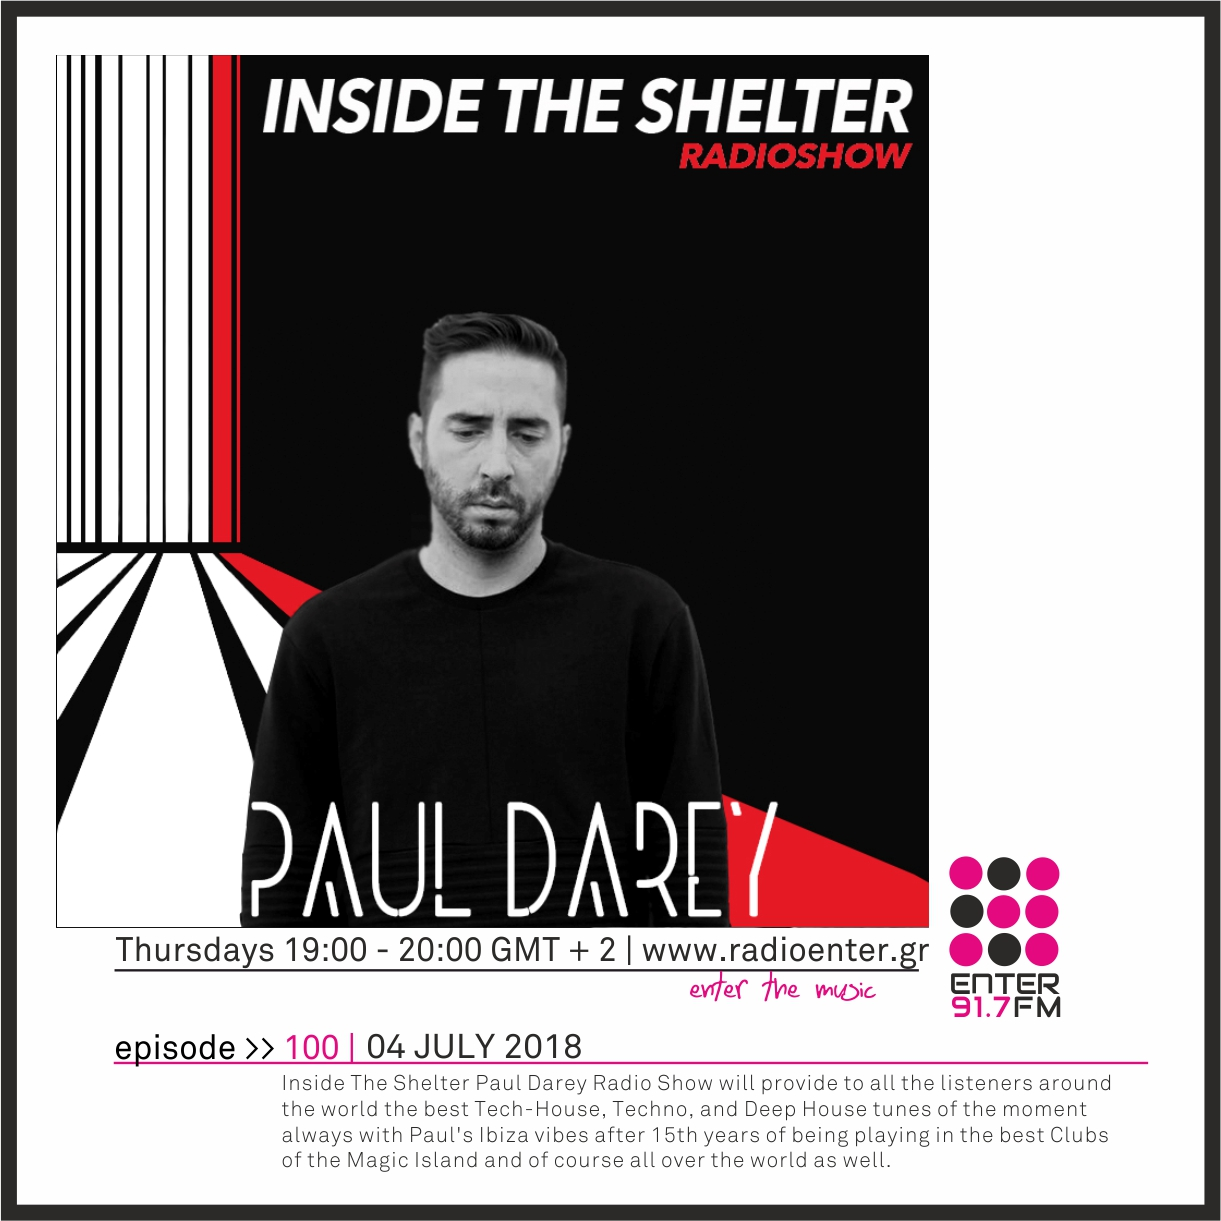 2018.07.30 - Paul Darey 'Inside The Shelter' 100